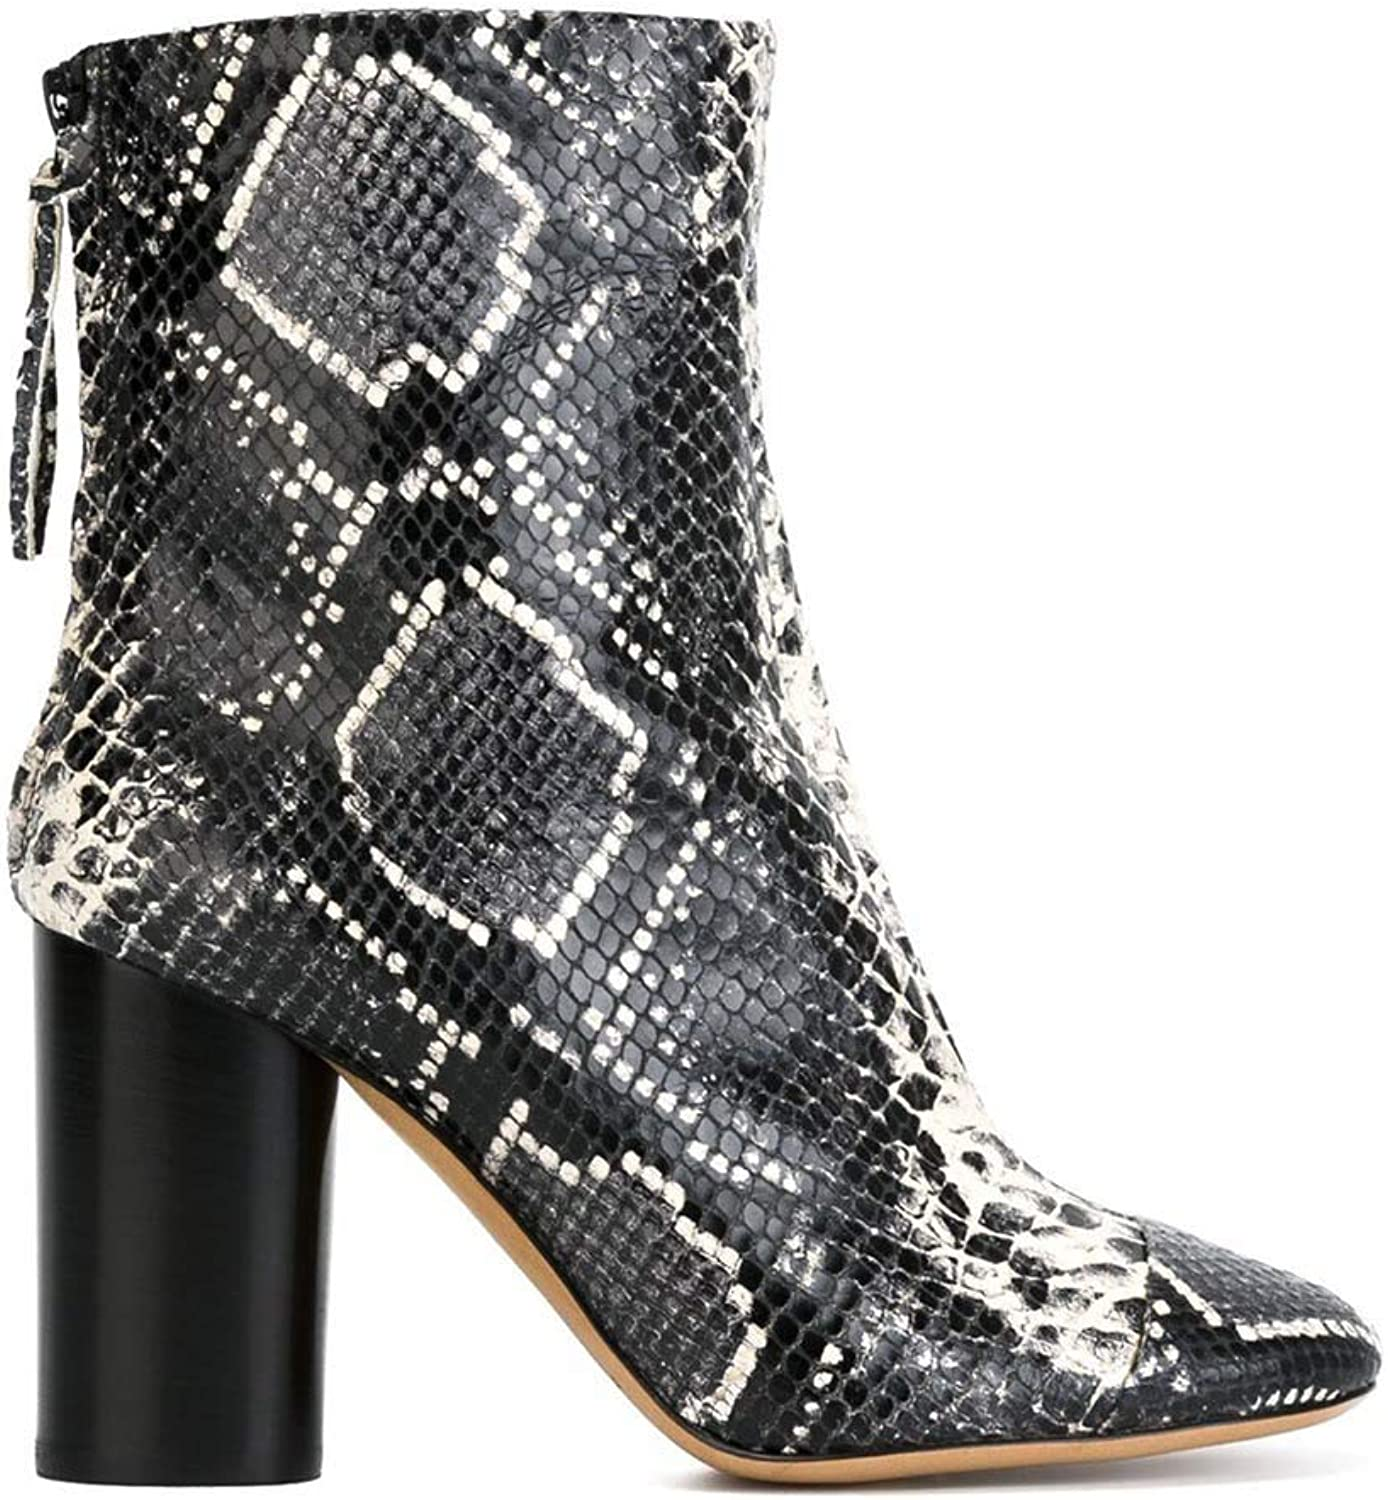 EQEQ Women's Ankle Boots Comfortable Thick Snakeskin Pointed Gorgeous Booties